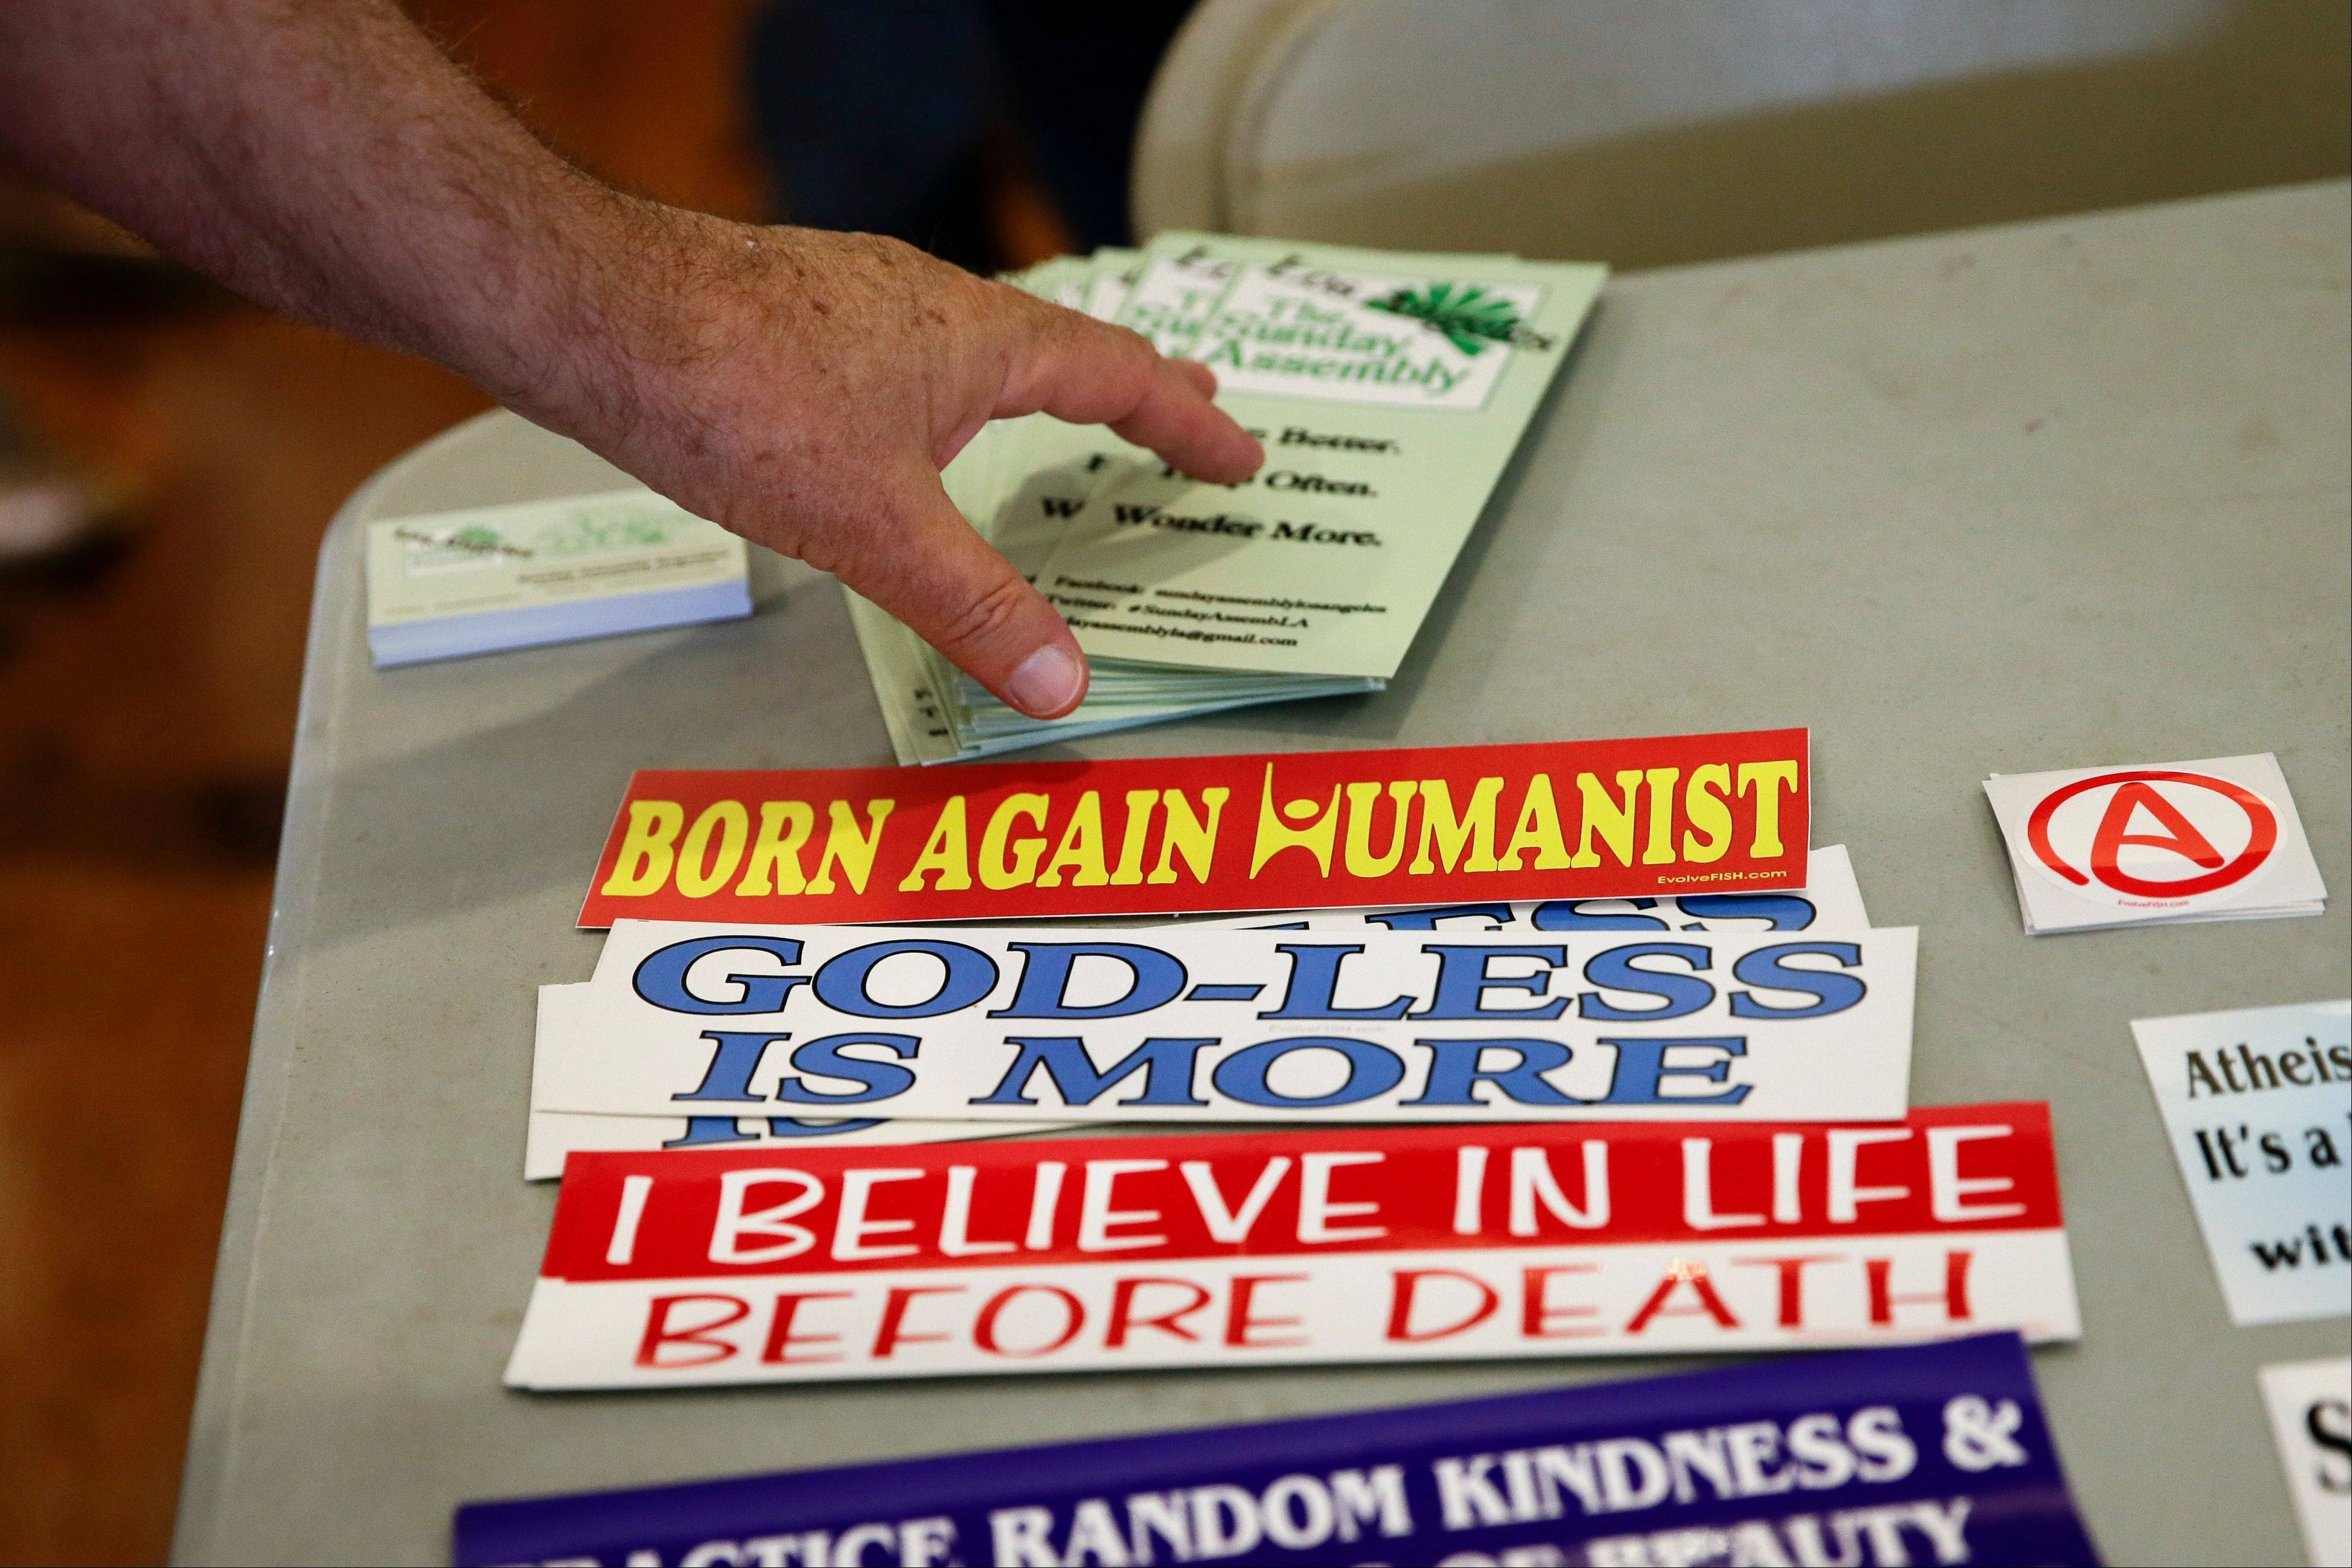 An attendee grabs a brochure at the Sunday Assembly, a godless congregation founded by two British comedians, on Sunday in Los Angeles. A new mega-church movement is generating buzz from London to Los Angeles, but this time it's a belief in non-belief that's drawing crowds on Sunday mornings.